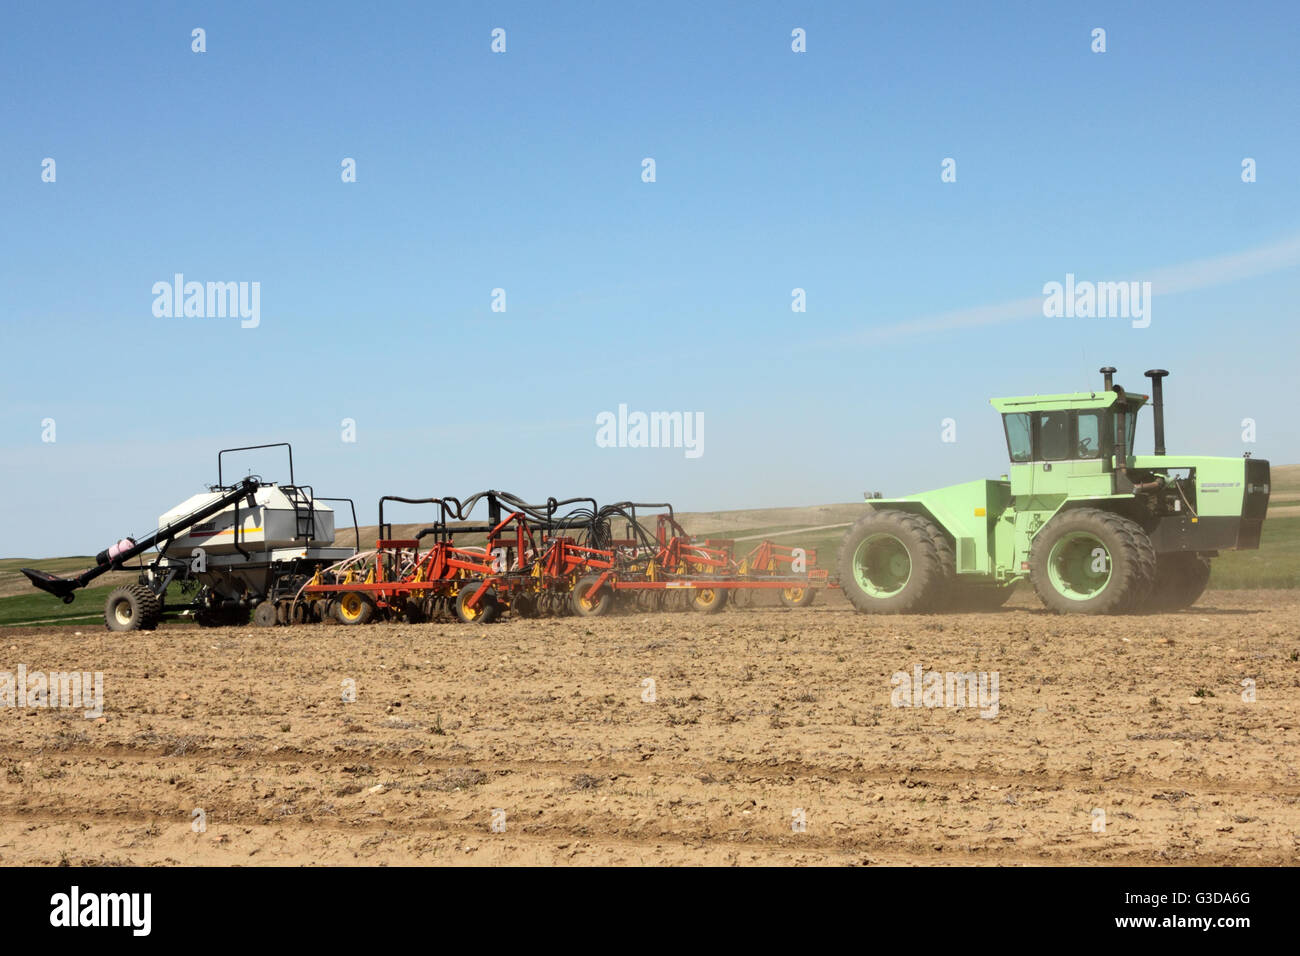 A farmer seeding a field using a Steiger Bearcat tractor pulling an Bourgault Air Hoe Drill and Air Seeder. In Alberta - Stock Image